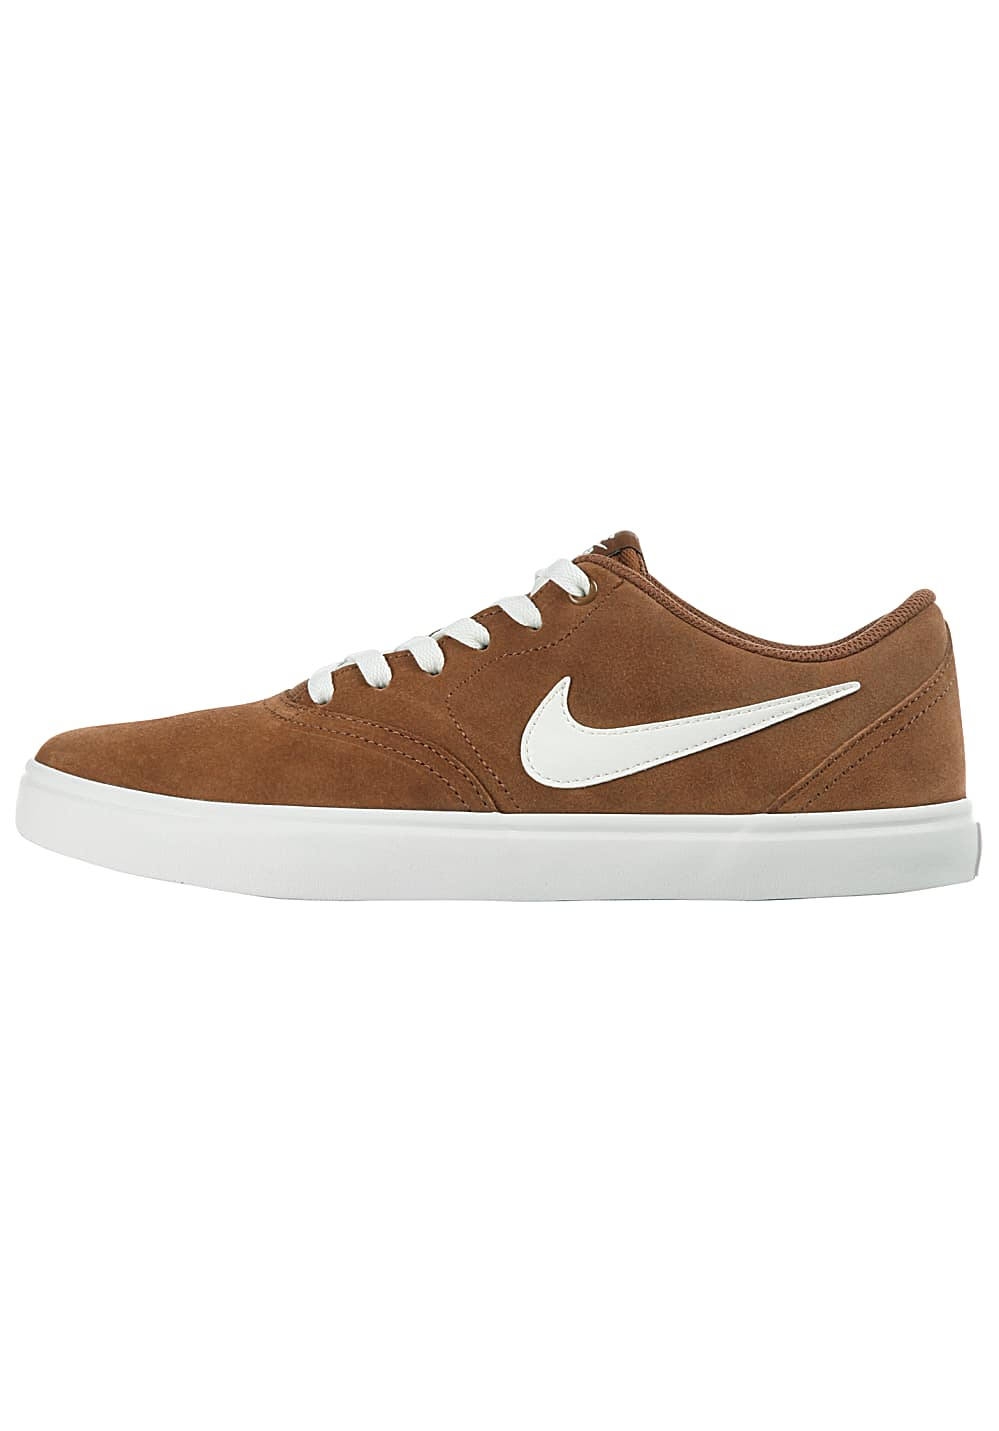 detailing aliexpress best sell NIKE SB Check Solar - Sneakers for Men - Brown